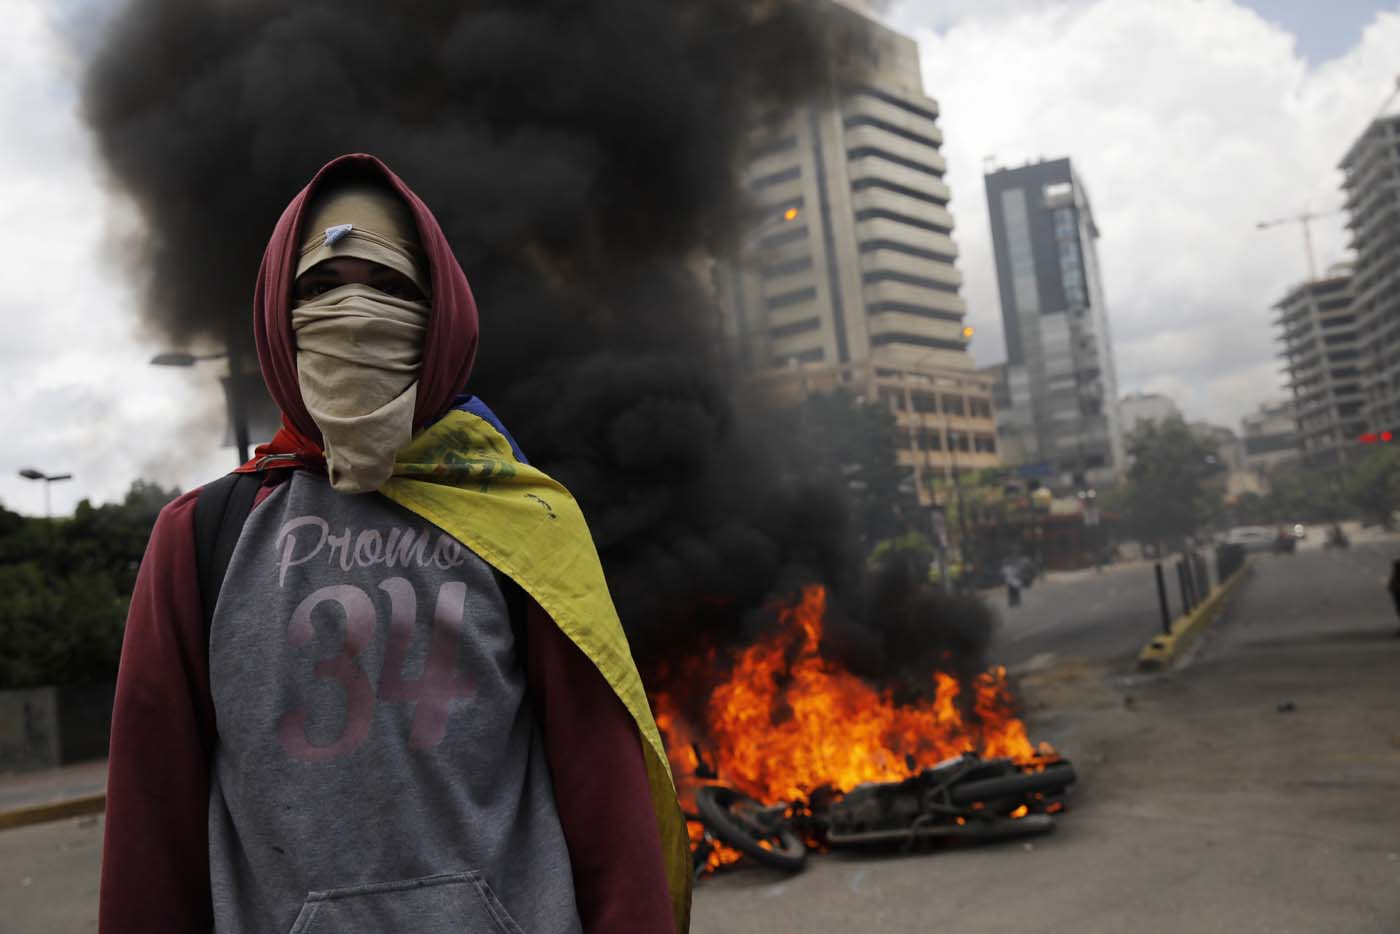 An opposition supporter walks near burning motorcycles as clashes break out while the Constituent Assembly election is being carried out in Caracas, Venezuela, July 30, 2017. REUTERS/Carlos Garcia Rawlins